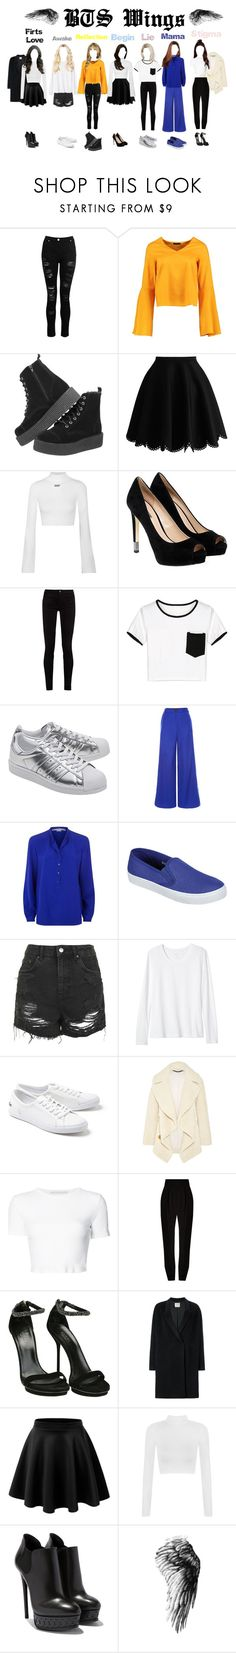 """""""BTS Wing's Solo Songs"""" by kpoplover-dxxix ❤ liked on Polyvore featuring Dorothy Perkins, Boohoo, Off-White, GUESS, Gucci, WithChic, adidas Originals, Judy Wu, STELLA McCARTNEY and Topshop"""